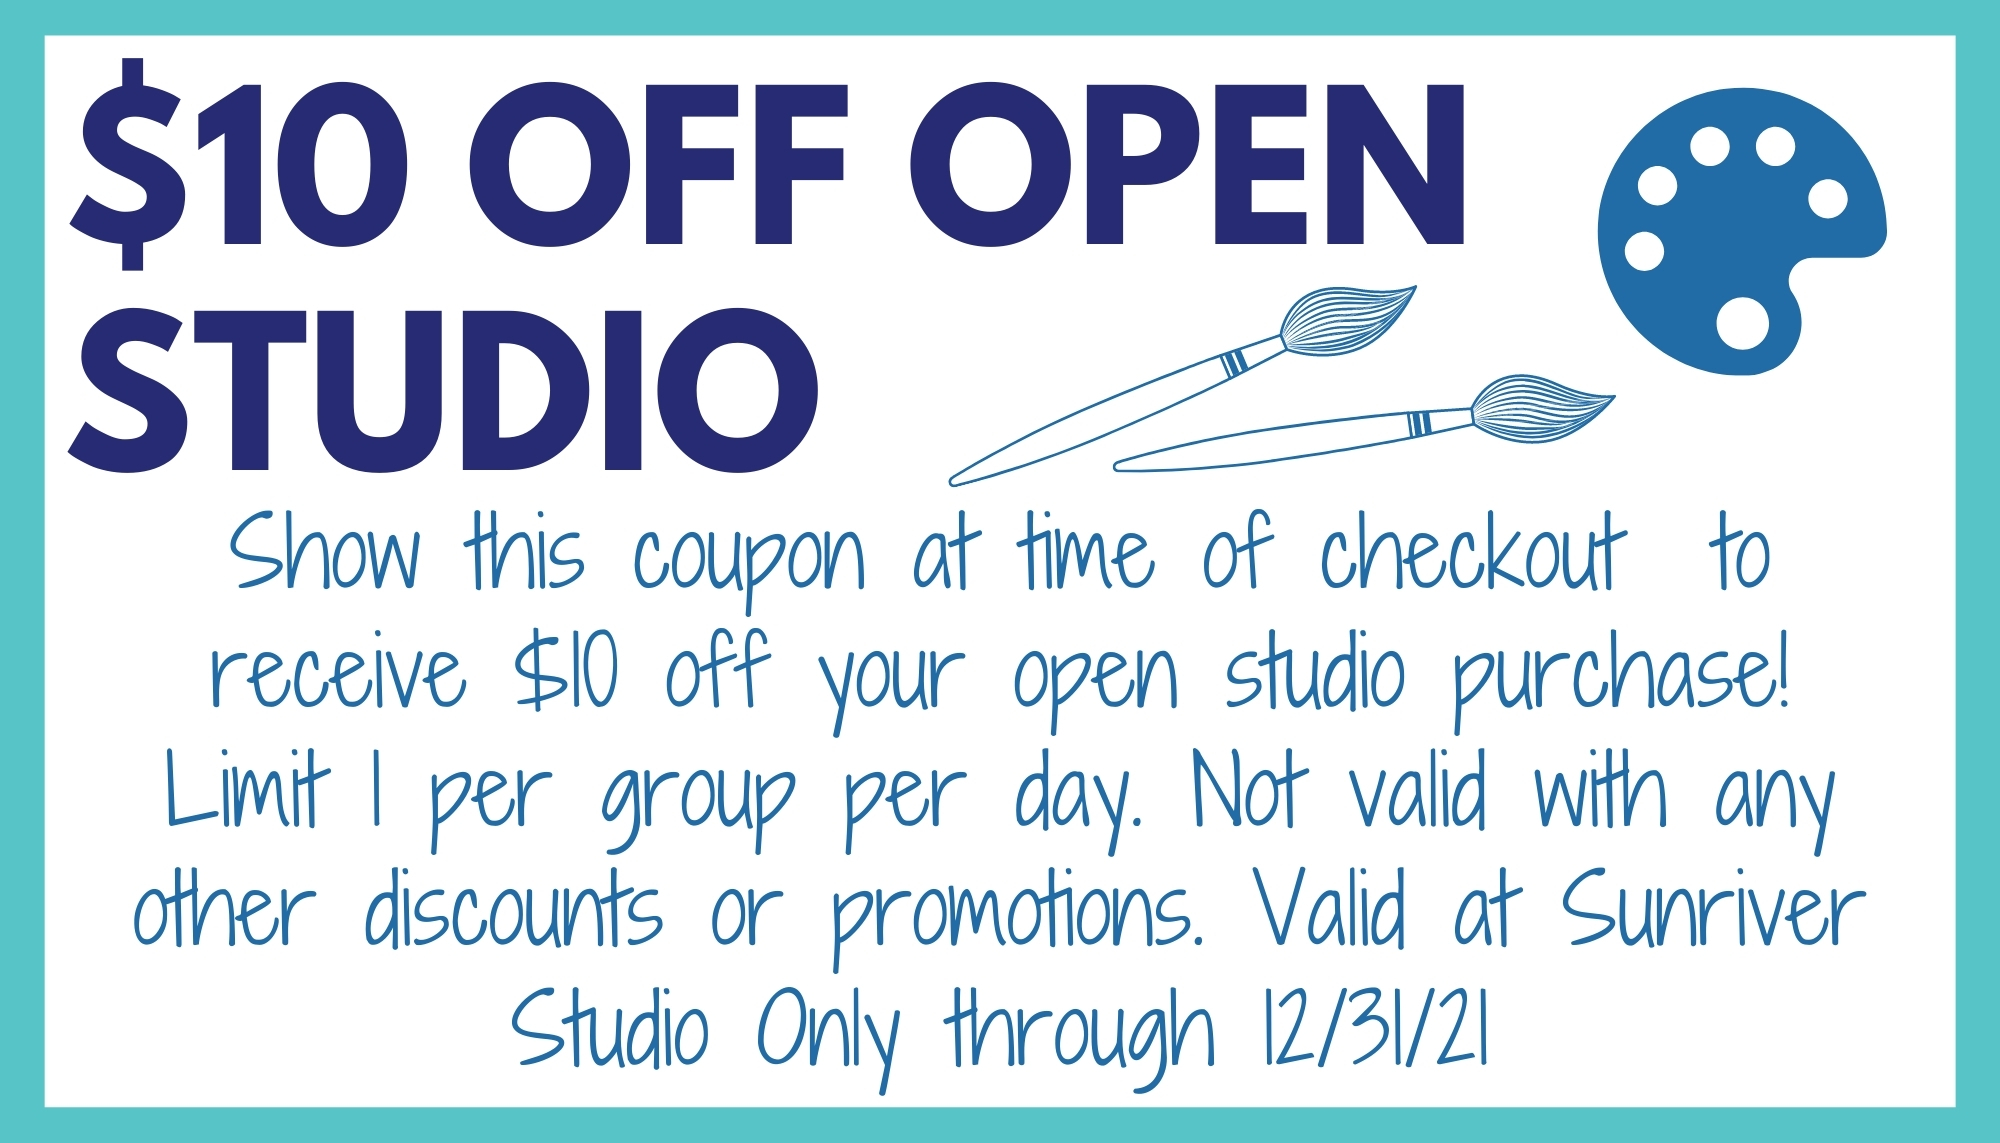 use this coupon to receive $10 off your next open studio activity. limit 1 per table per day. expires 12/31/21